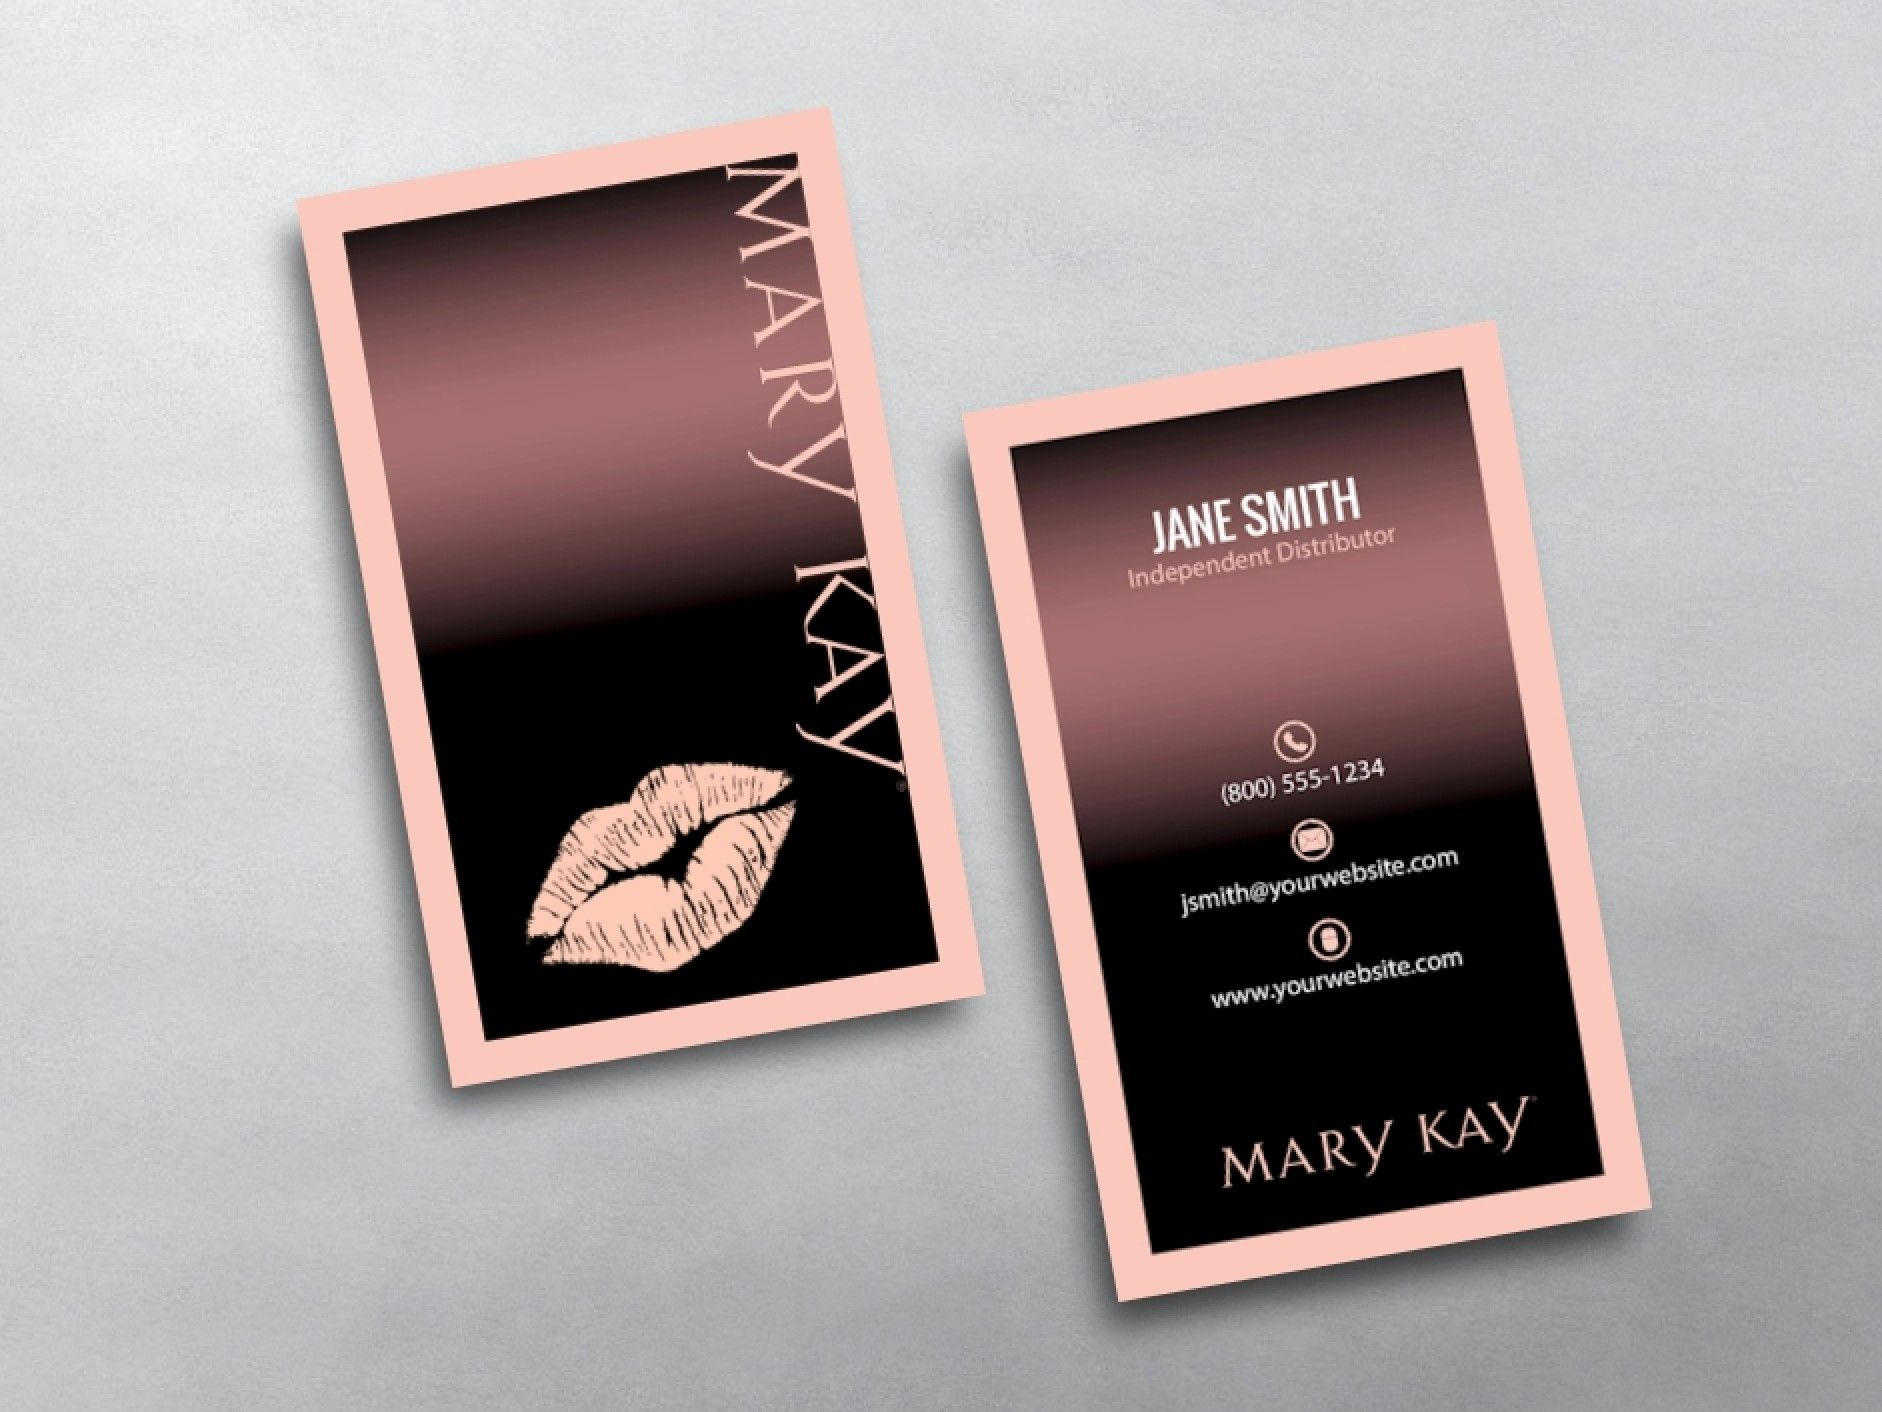 Mary kay business cards beauty consultant mary kay and mary custom mary kay business card printing for mary kay independent beauty consultants design print reheart Image collections